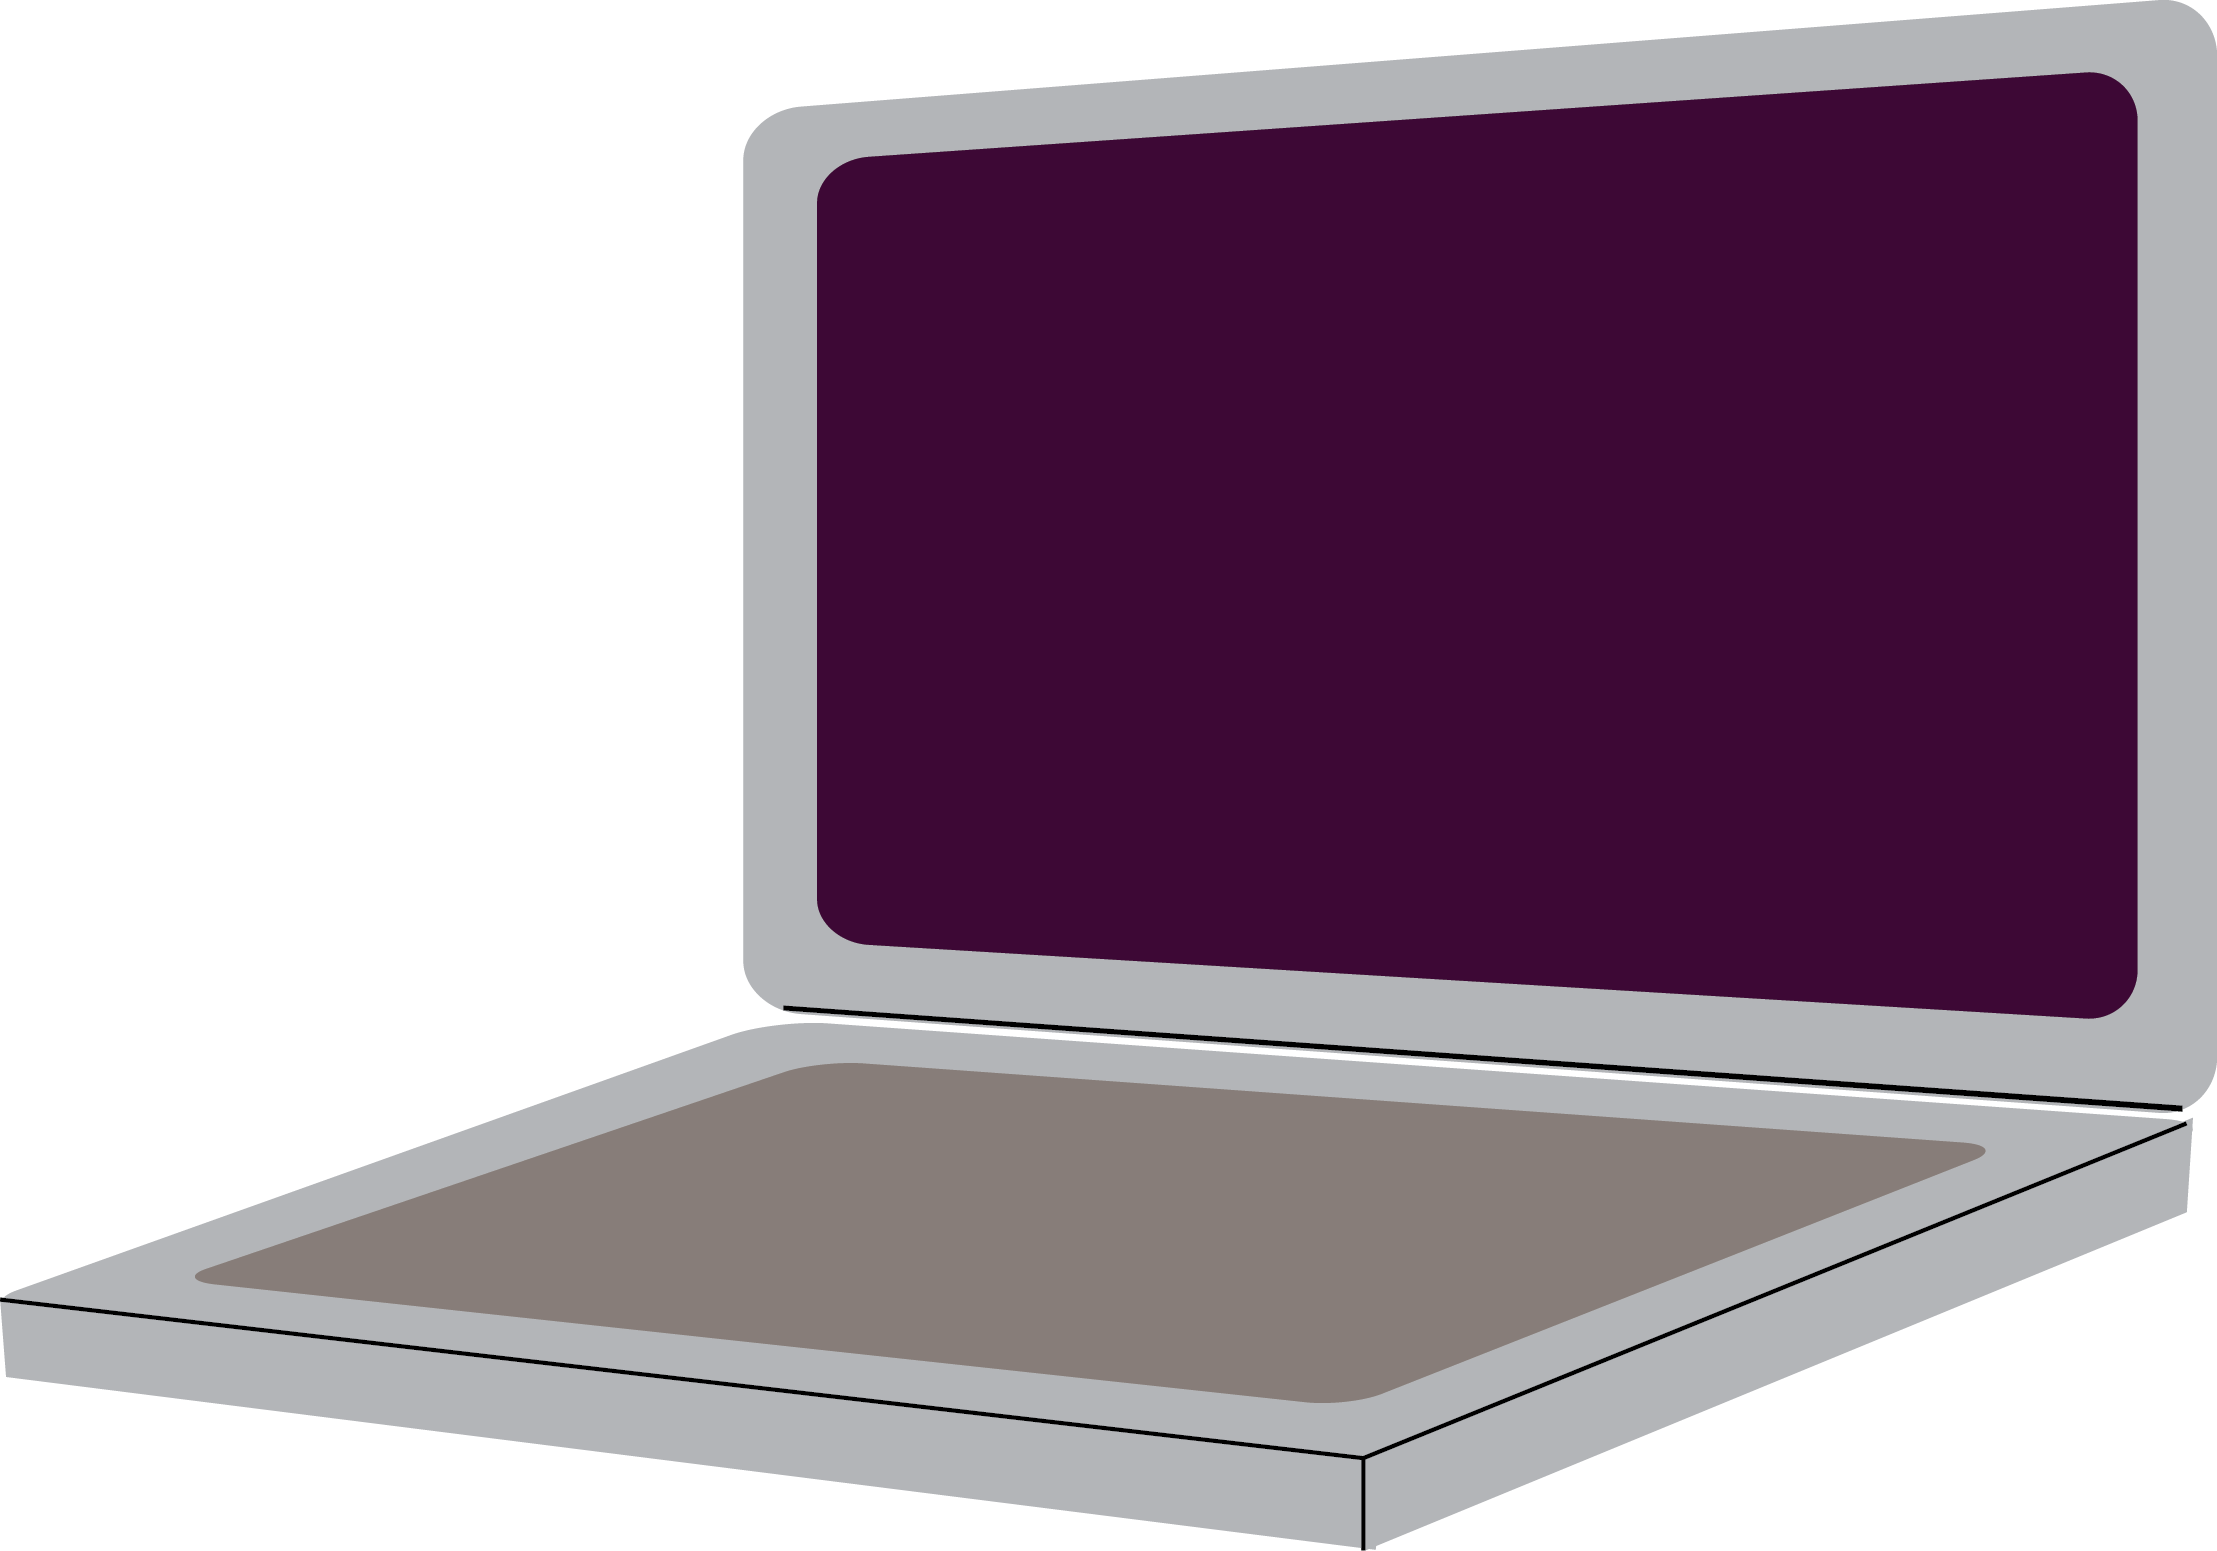 Cartoon of a laptop.